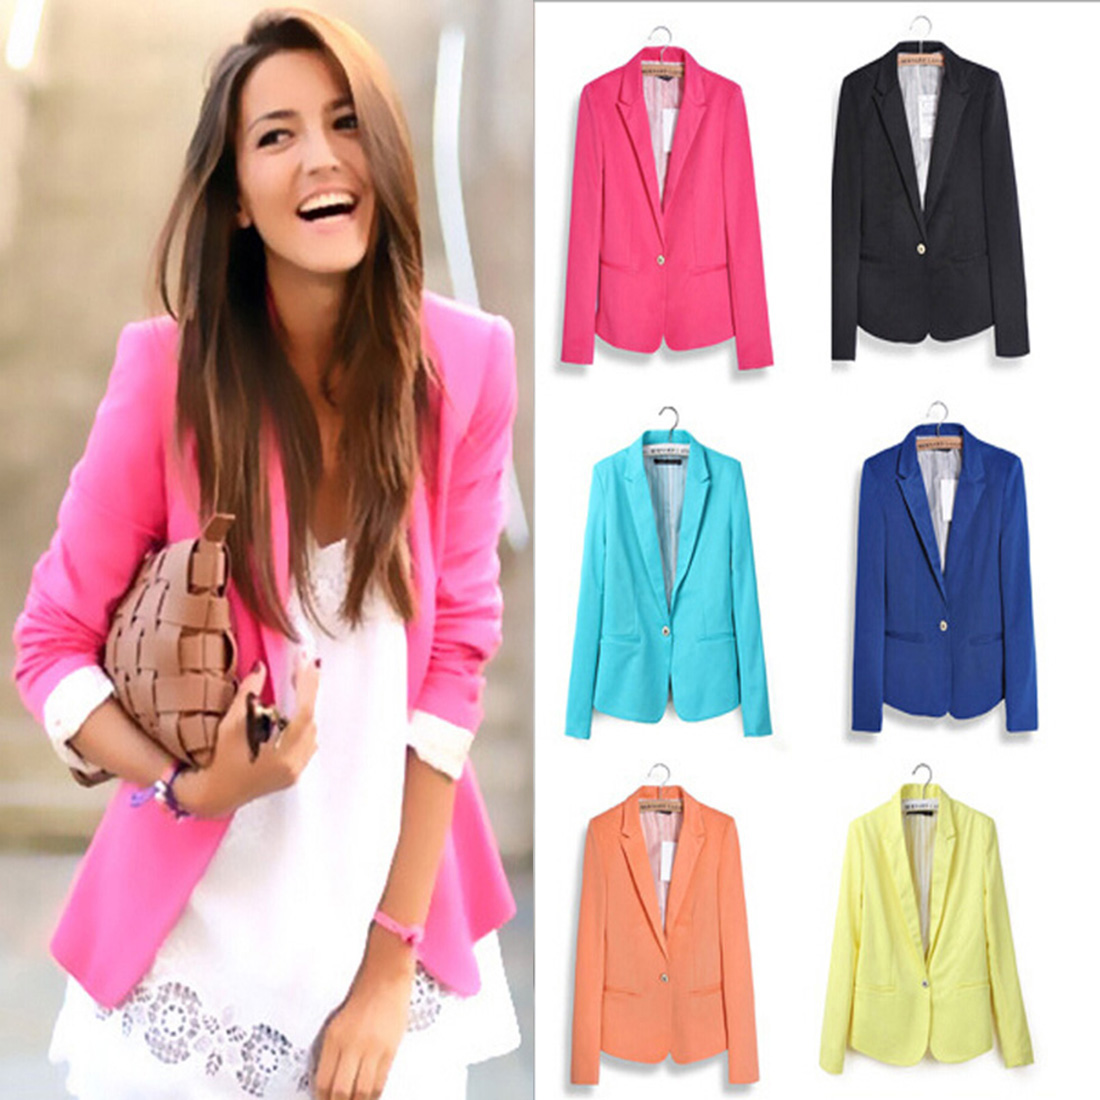 Ladies Blazer Long Sleeve Blaser Women Suit Jacket Female Feminine Blazer Femme Pink Blue Yellow Black Blazer Autumn Hot Sale